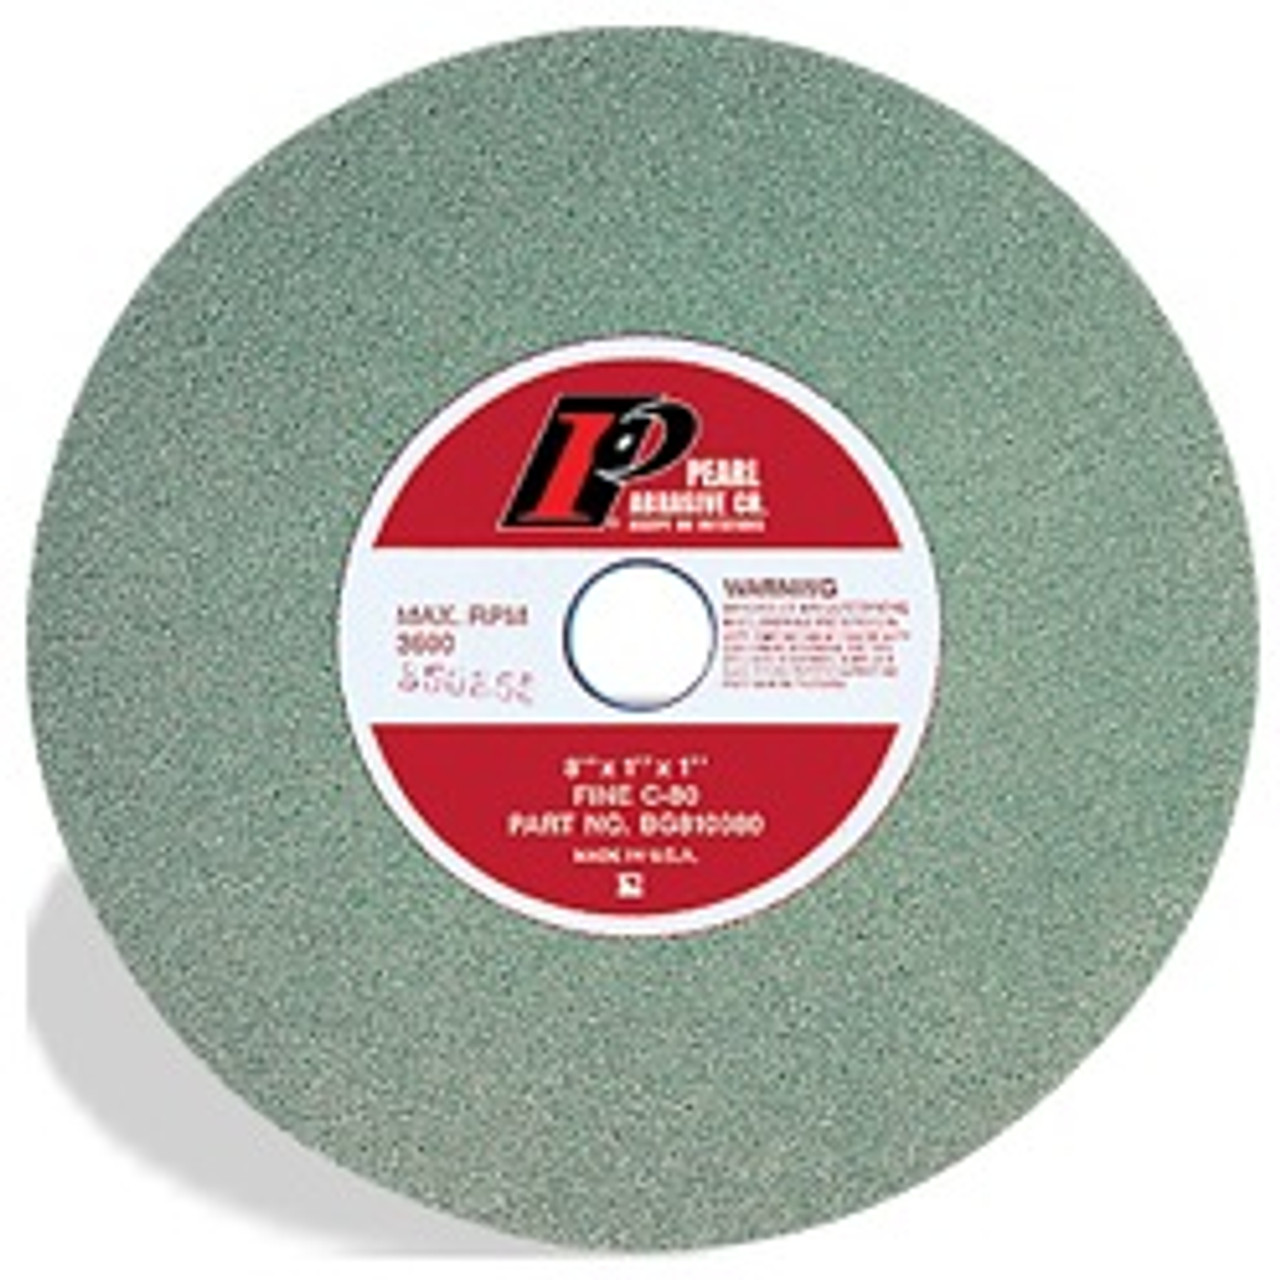 "Green SC Bench Grinding Wheels for Metal, 6"" x 1"" x 1"", Type 1 Shape C80"